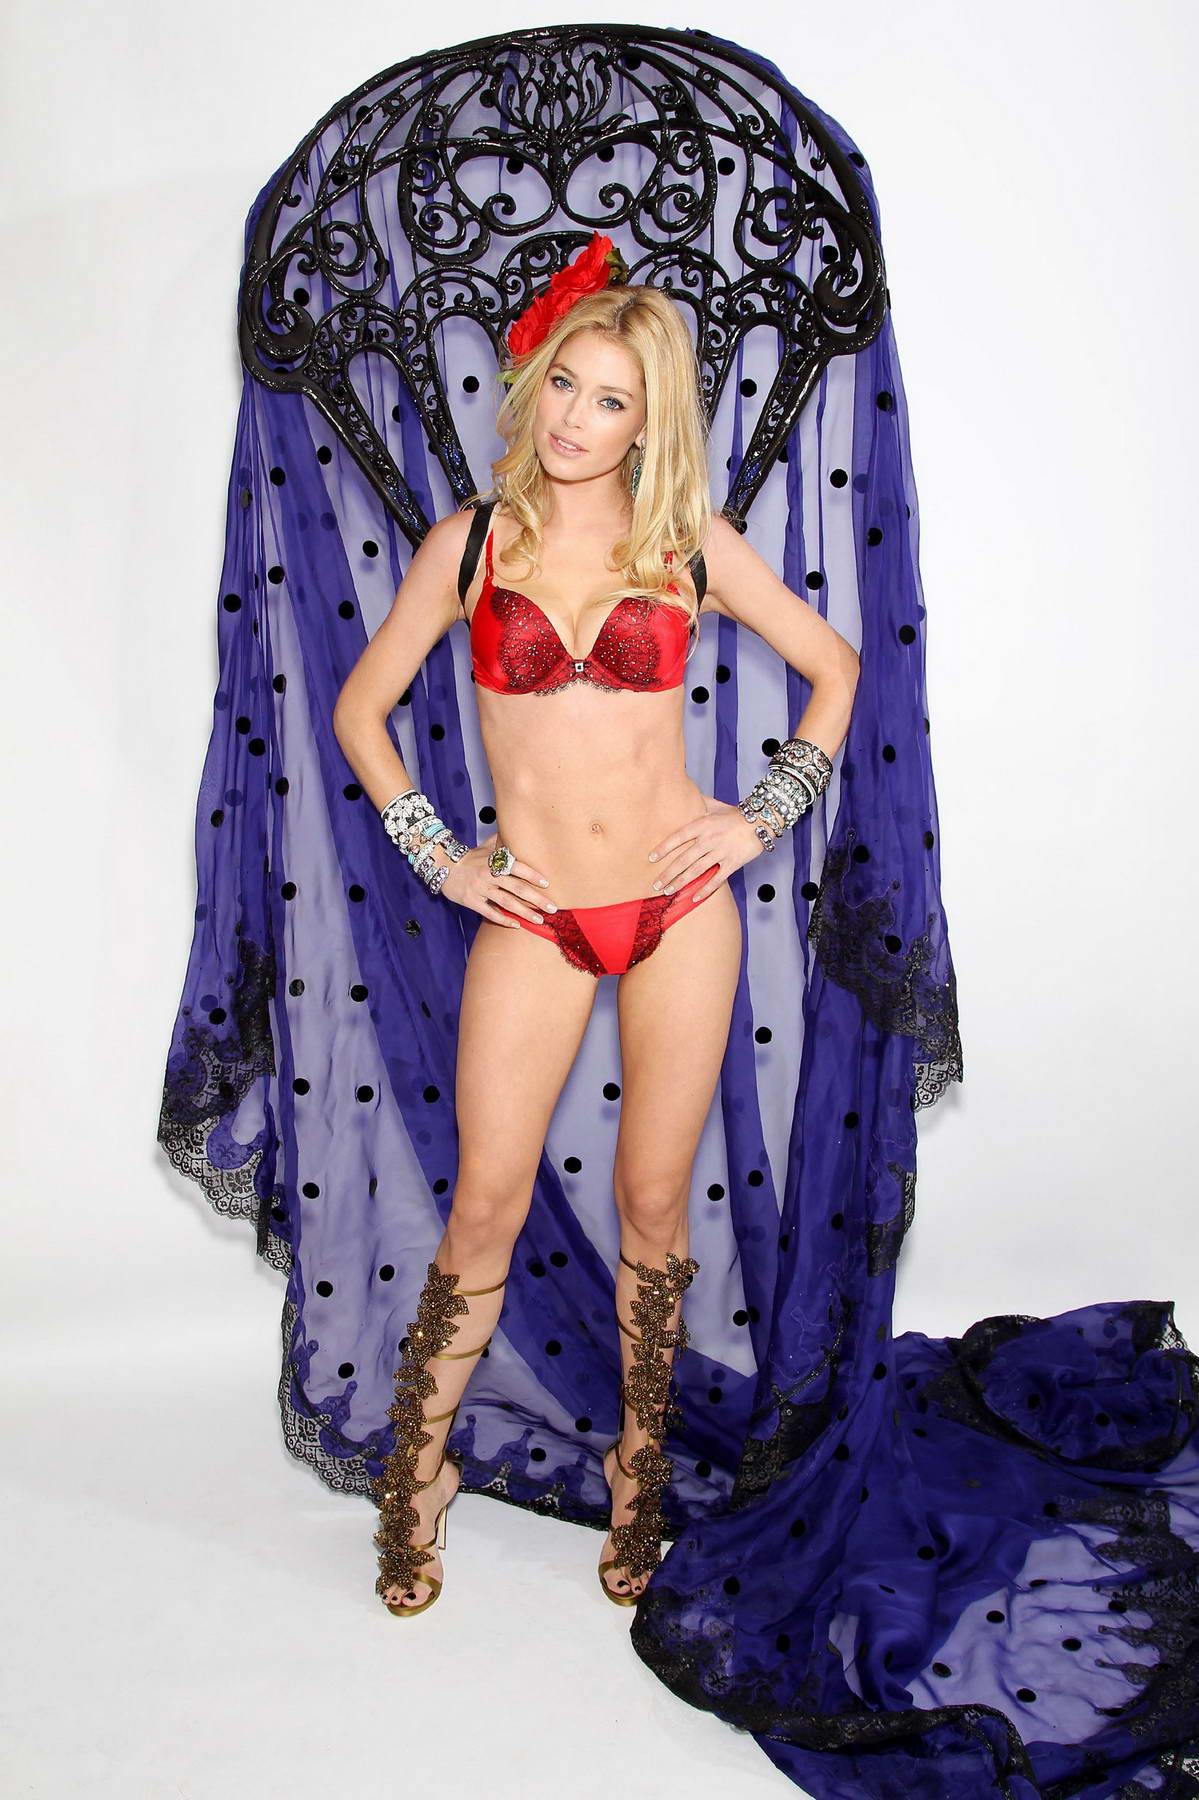 Victorias secret fashion show 2011 - Doutzen Kroes At Victoria S Secret Fashion Show 2011 Fittings